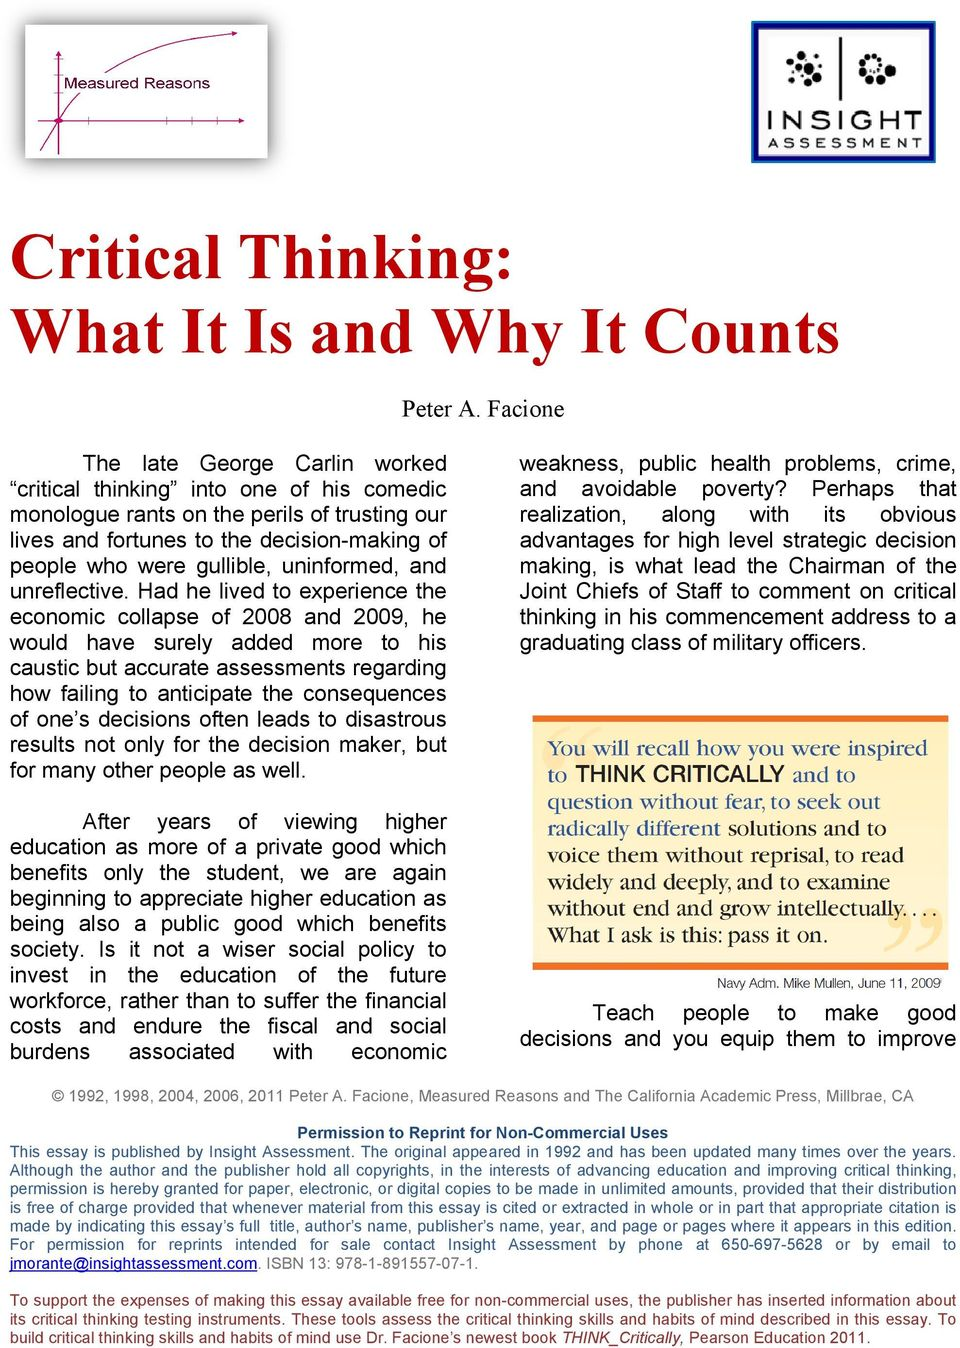 facione critical thinking what it is and why it counts 2010